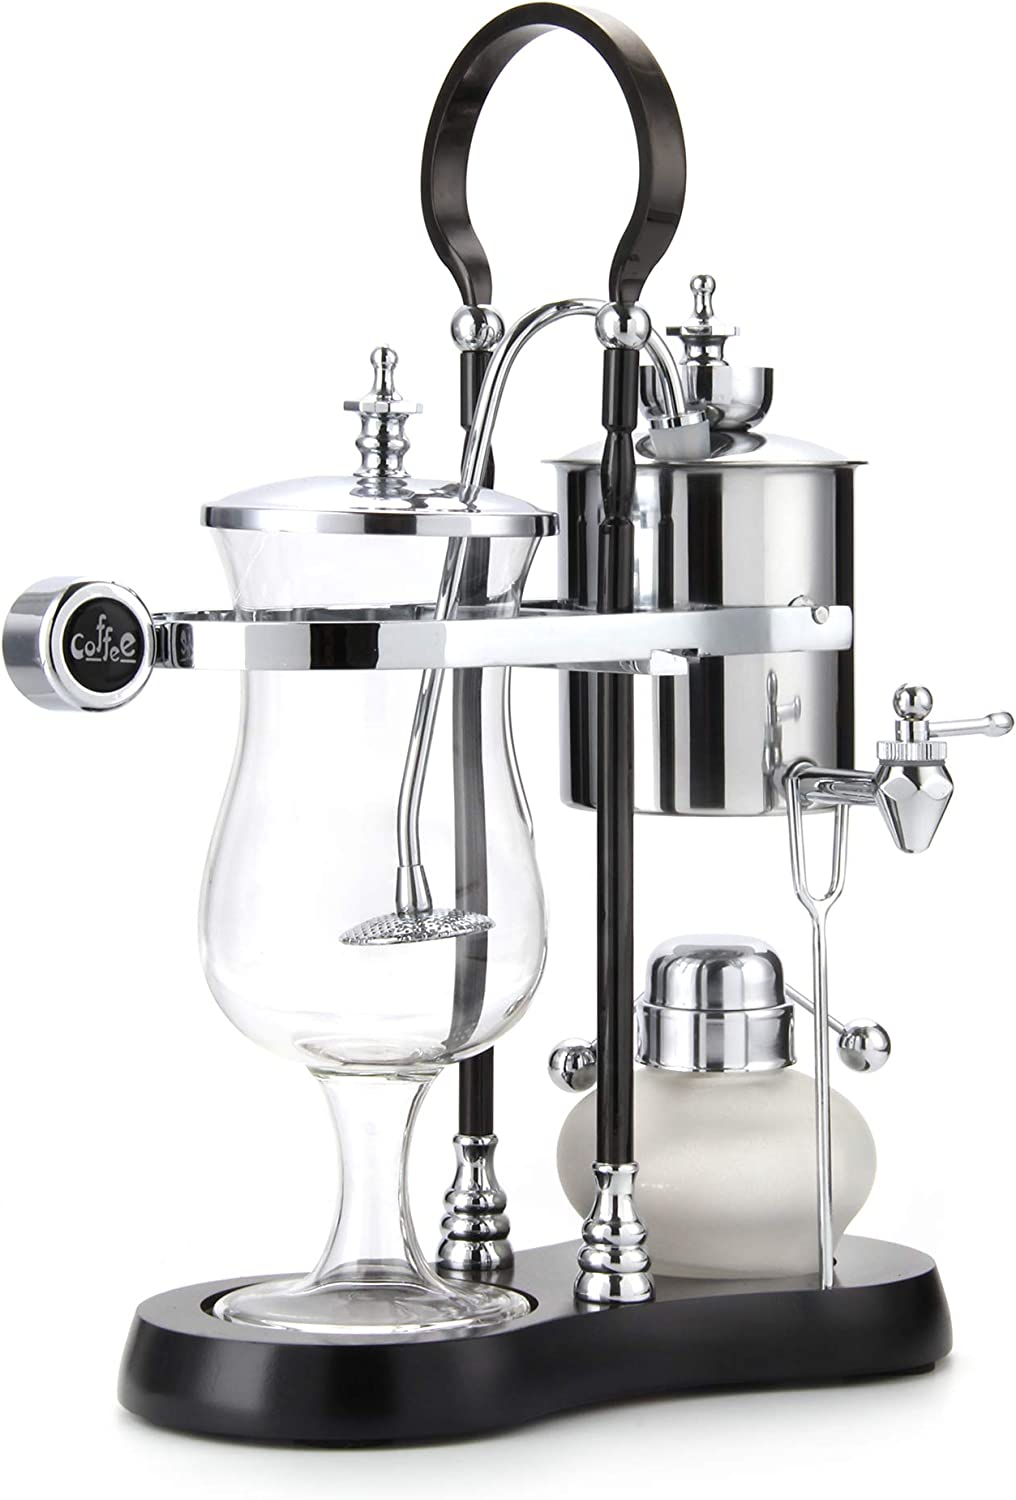 Diguo Belgian Belgium Luxury Royal Family Balance Syphon Coffee Maker (Silver - Black Column)